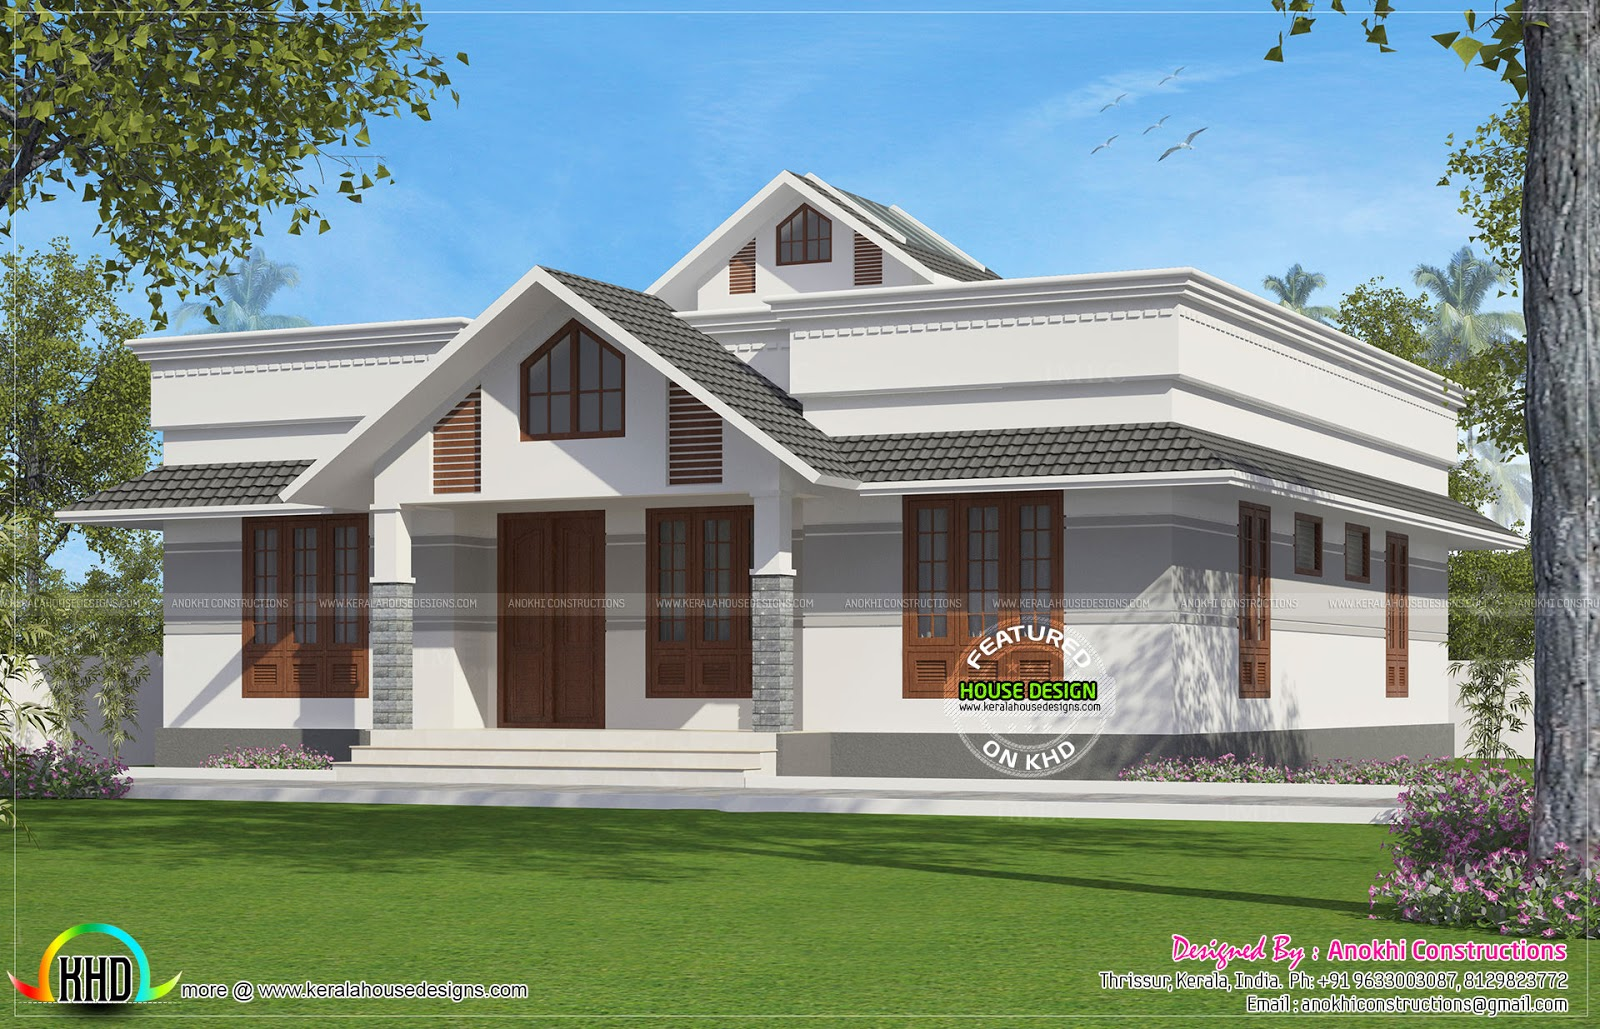 1330 square feet small house plan kerala home design and Low cost home design in india